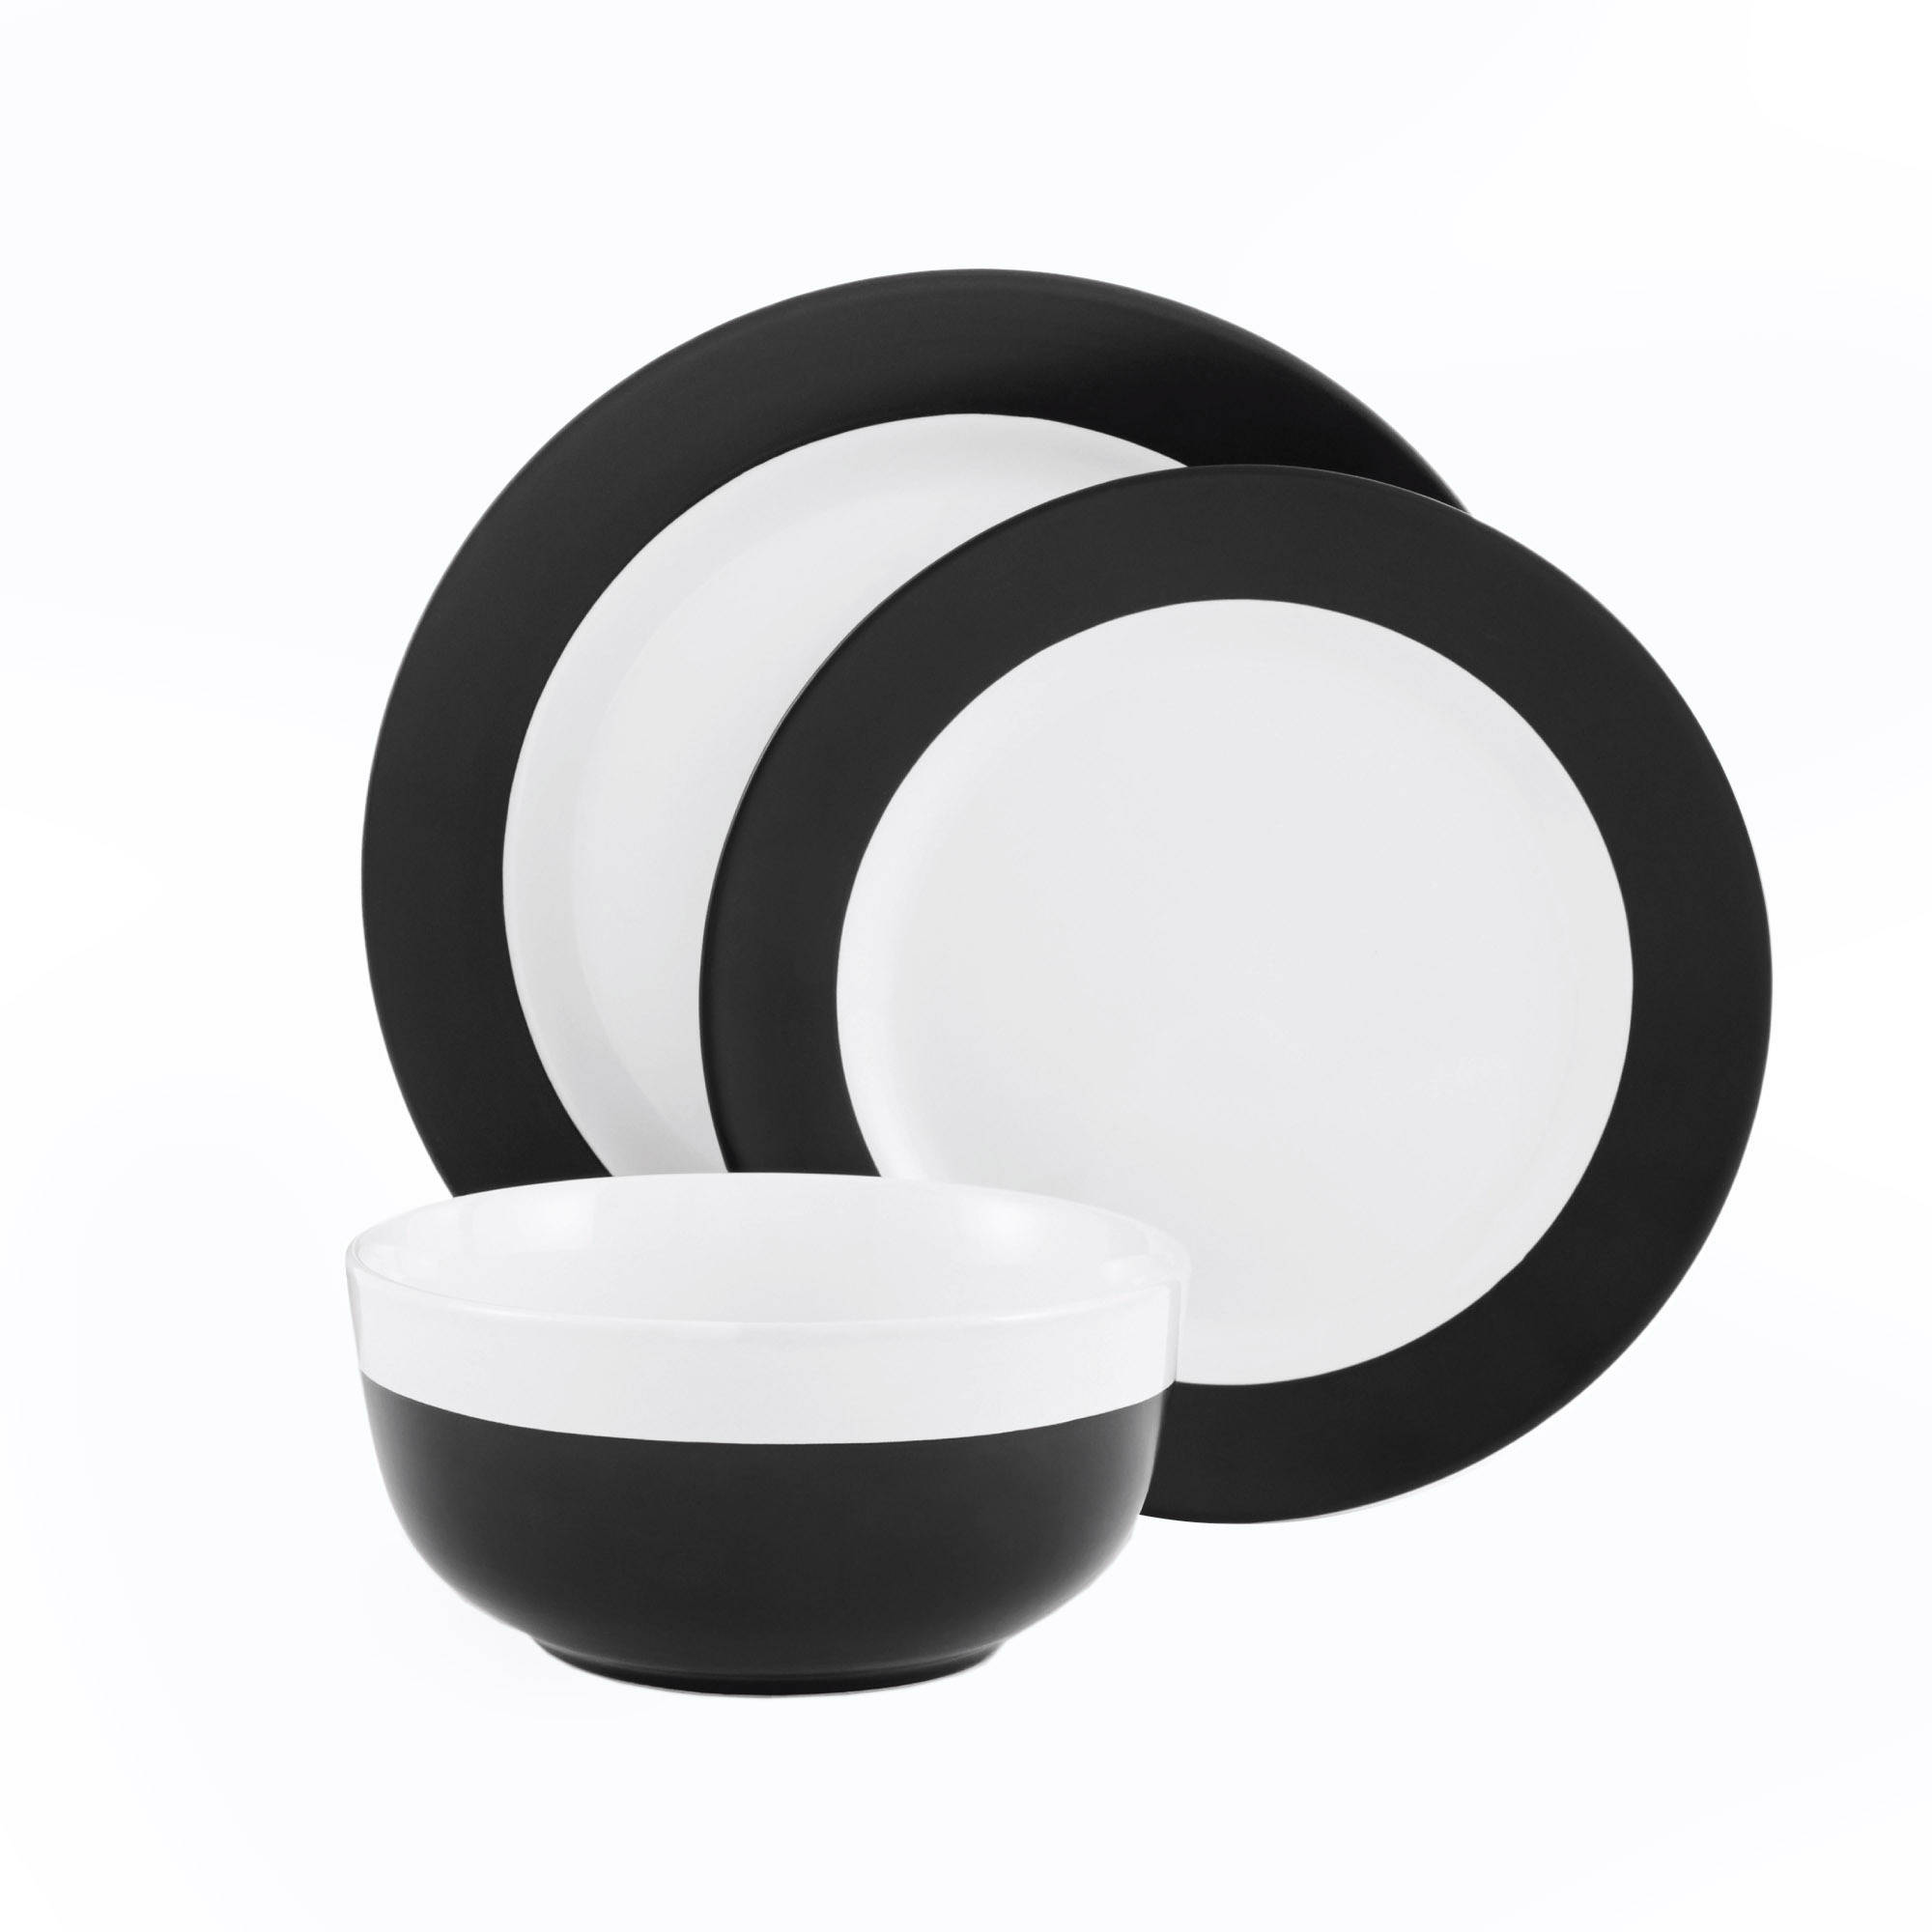 sc 1 st  Walmart & Mainstays 12-Piece Black and White Dinnerware Set - Walmart.com